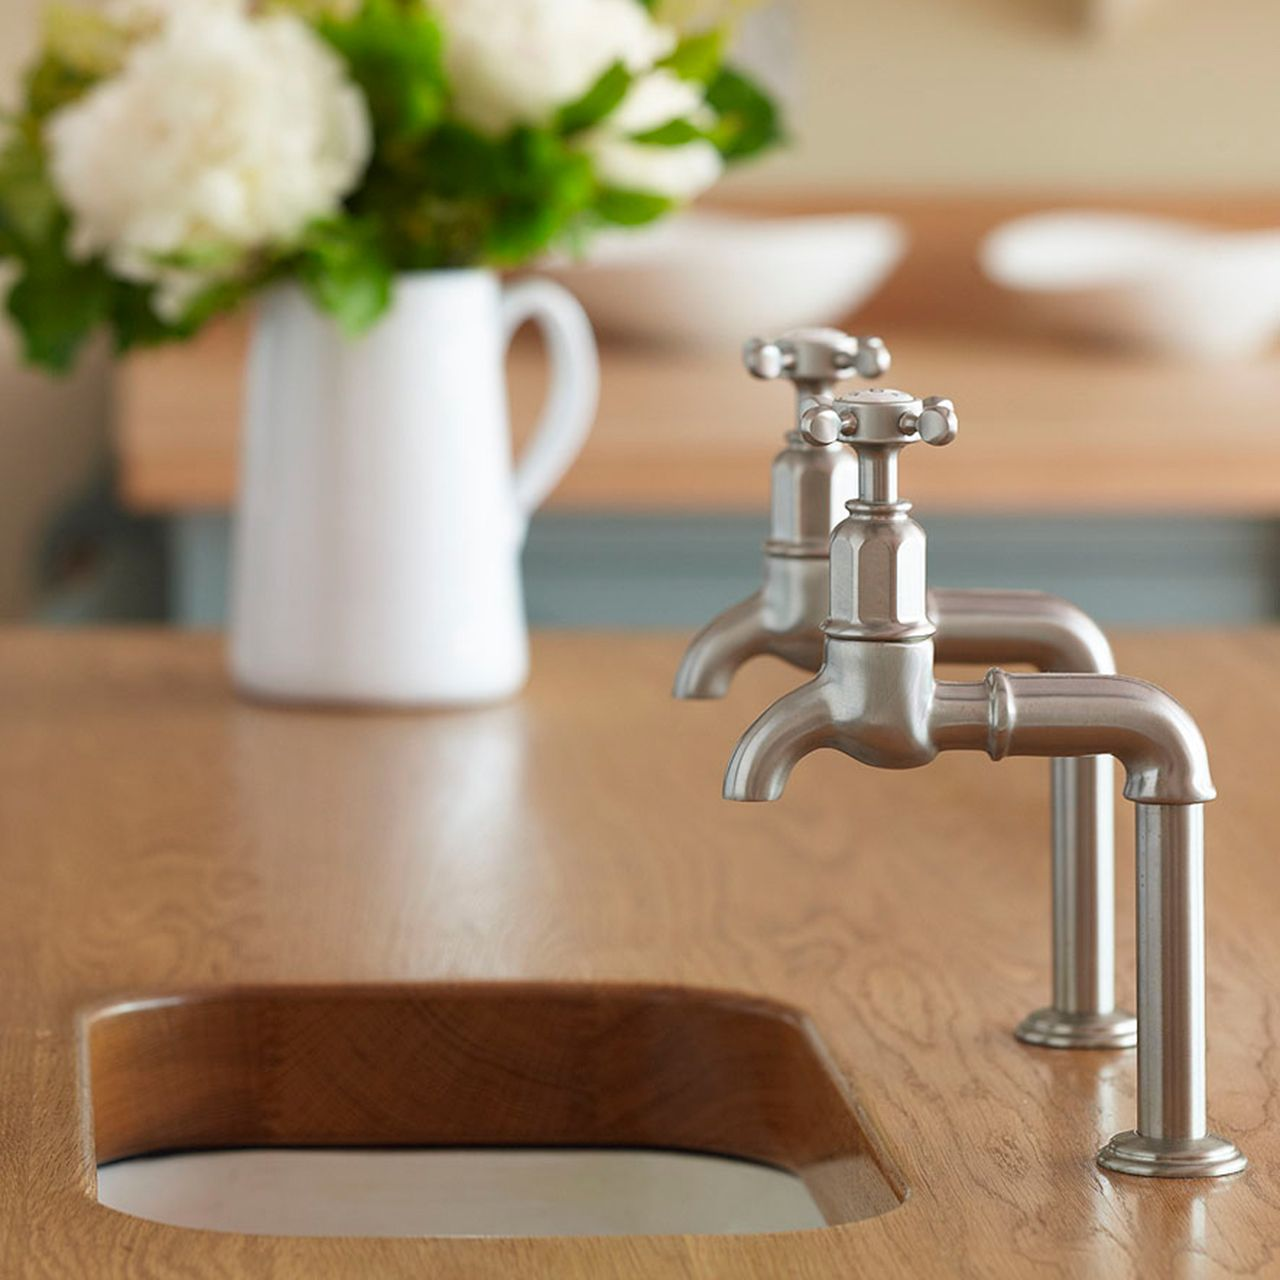 Mayan deck mounted taps with crosshead handles | Perrin and Rowe ...